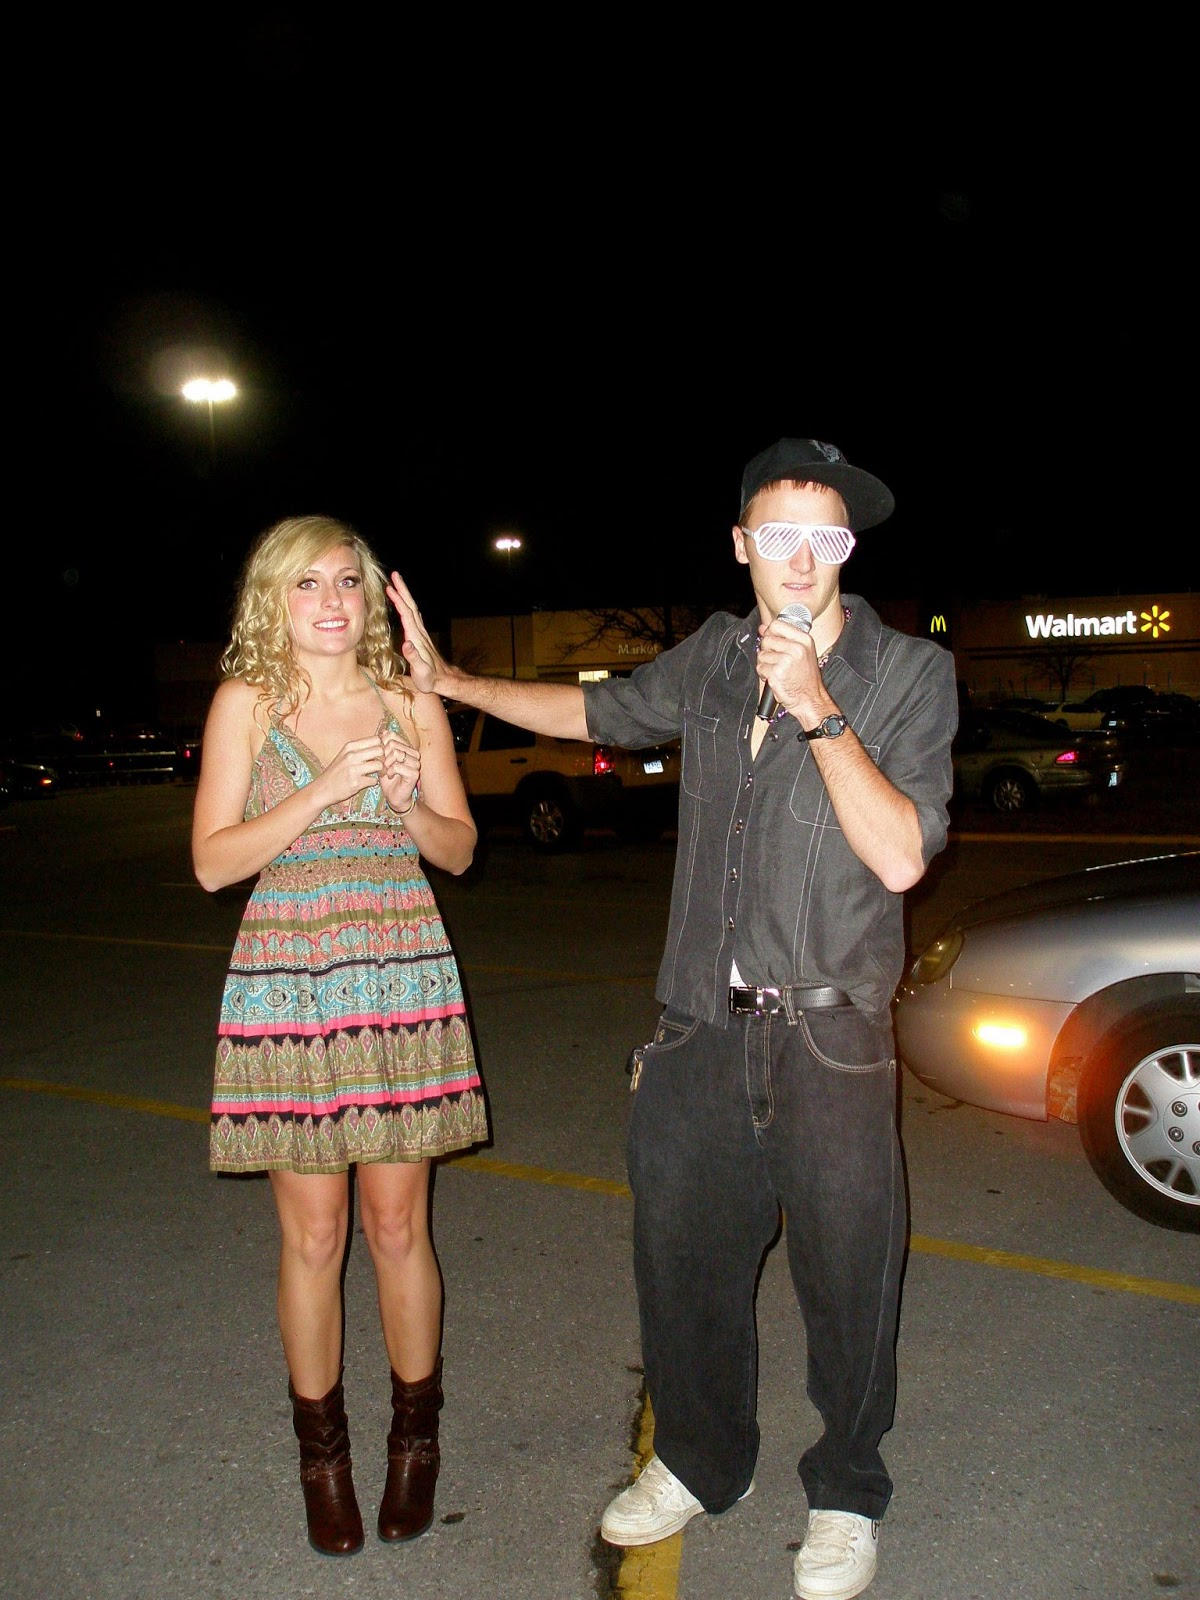 Katie in Kansas: DIY Couples Halloween Costume Ideas : Easy Diy Halloween Costumes 2013 For Kids